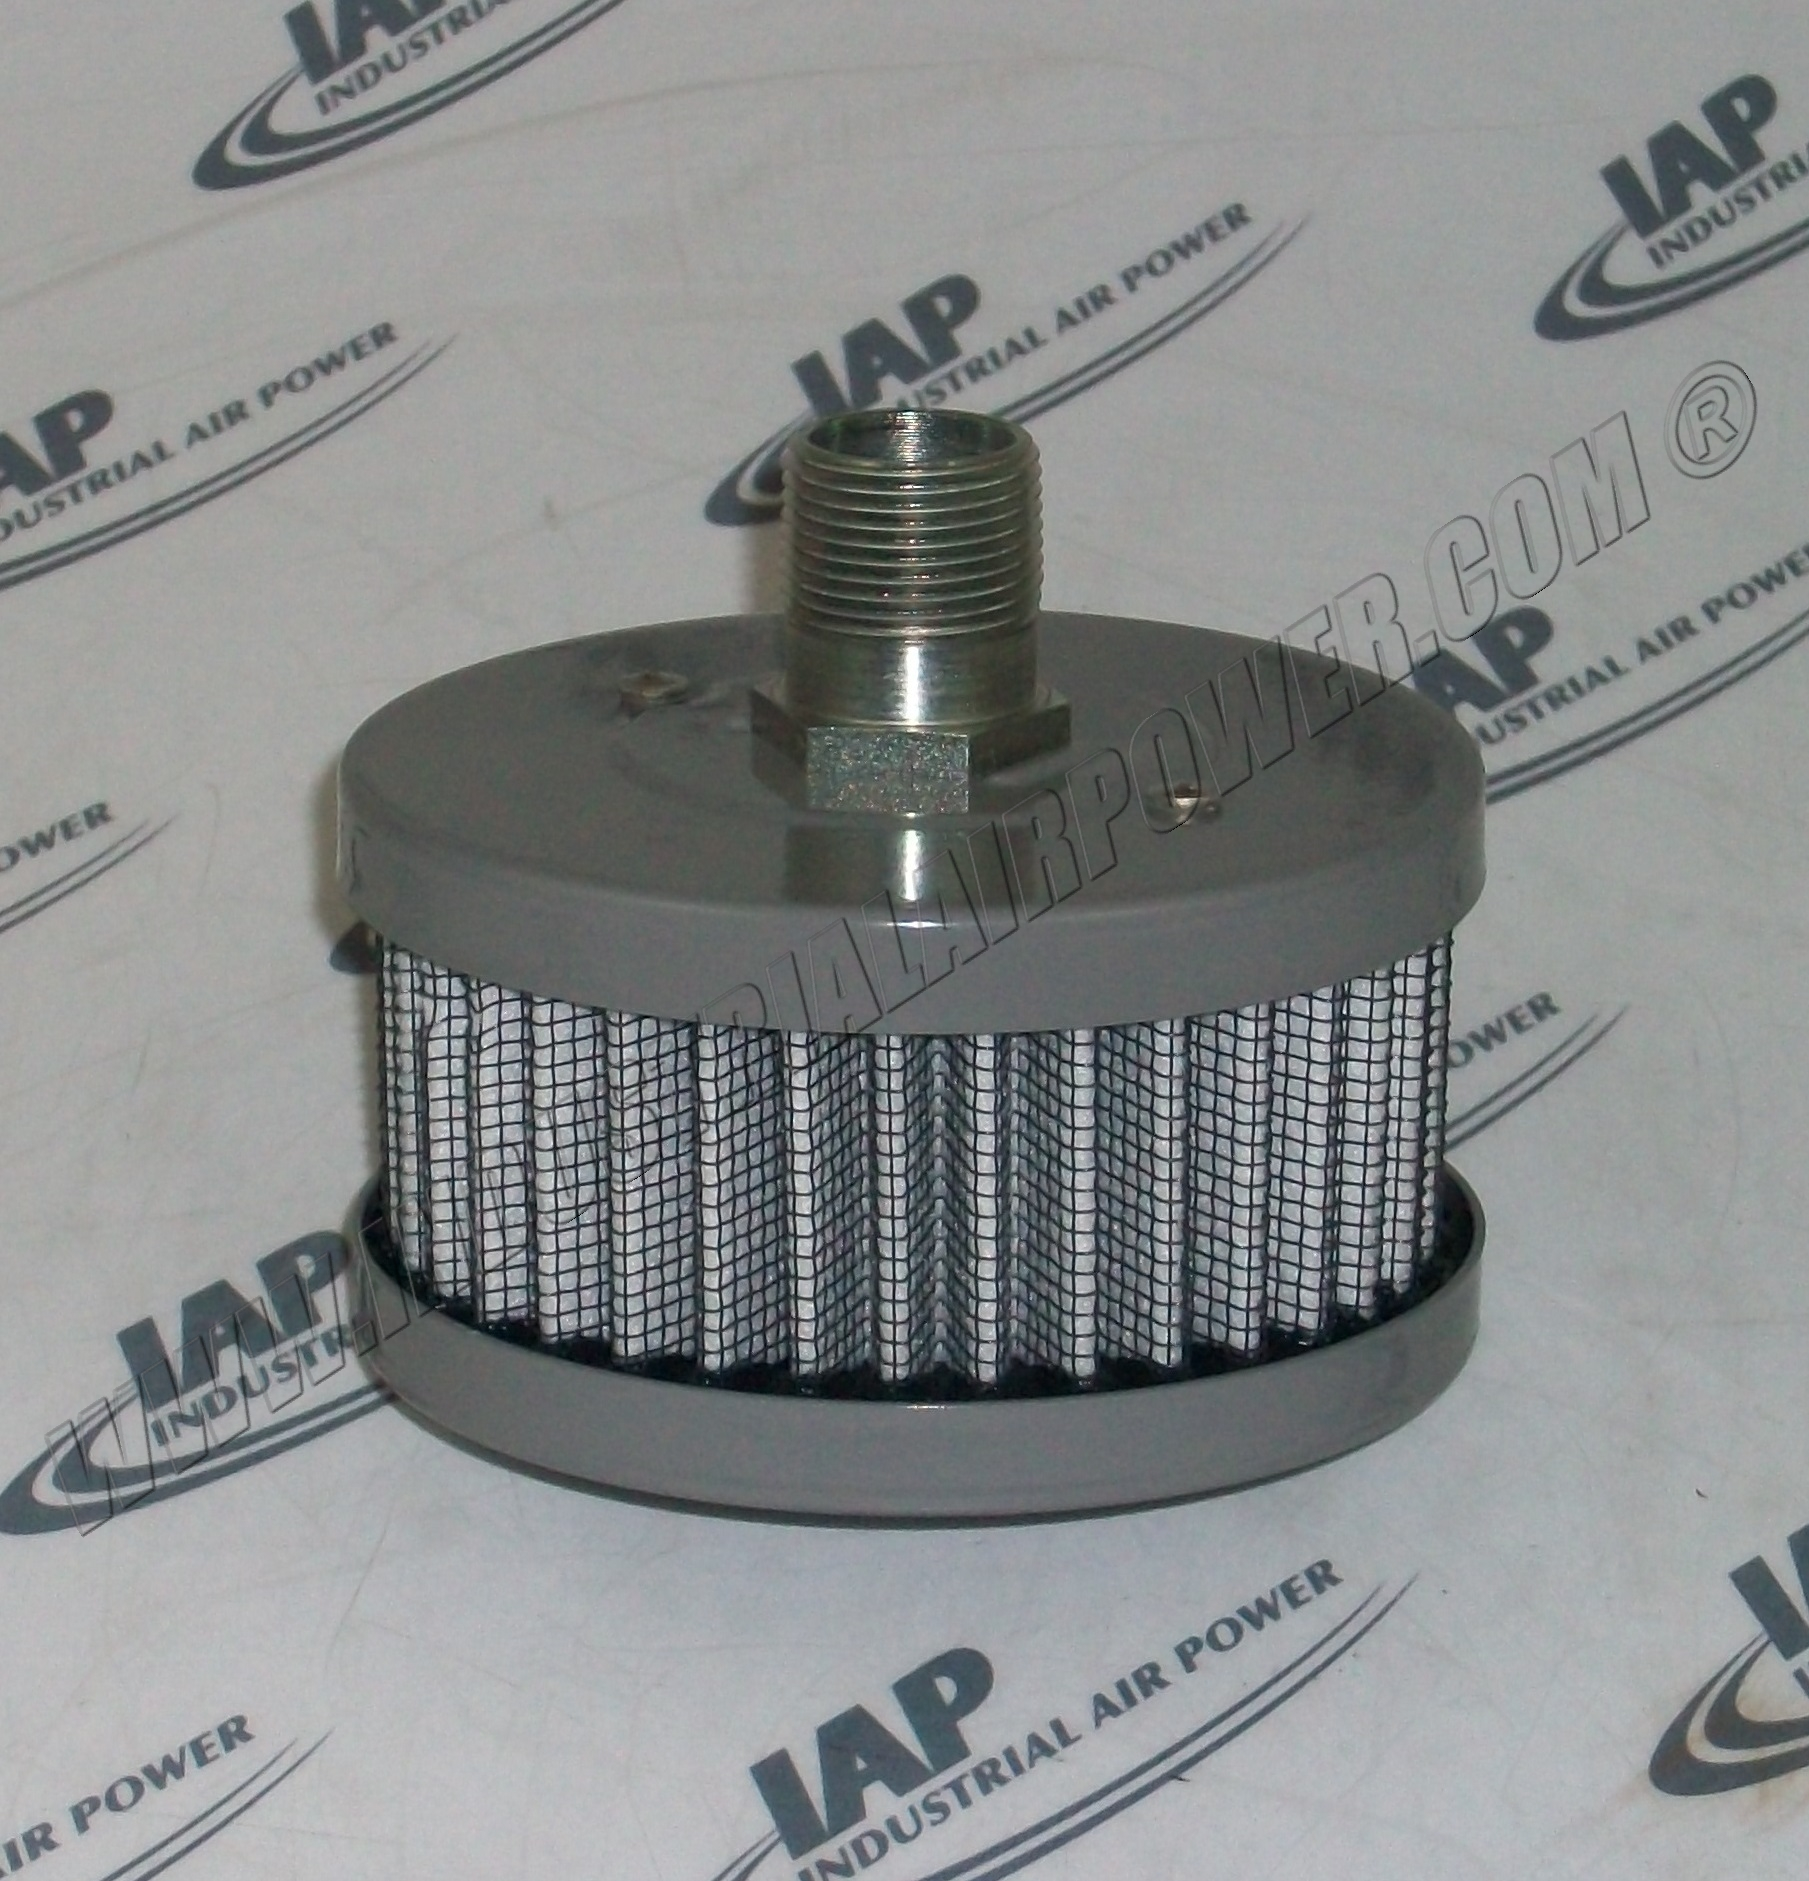 Air Filter Assembly : Quincy f air filter assembly